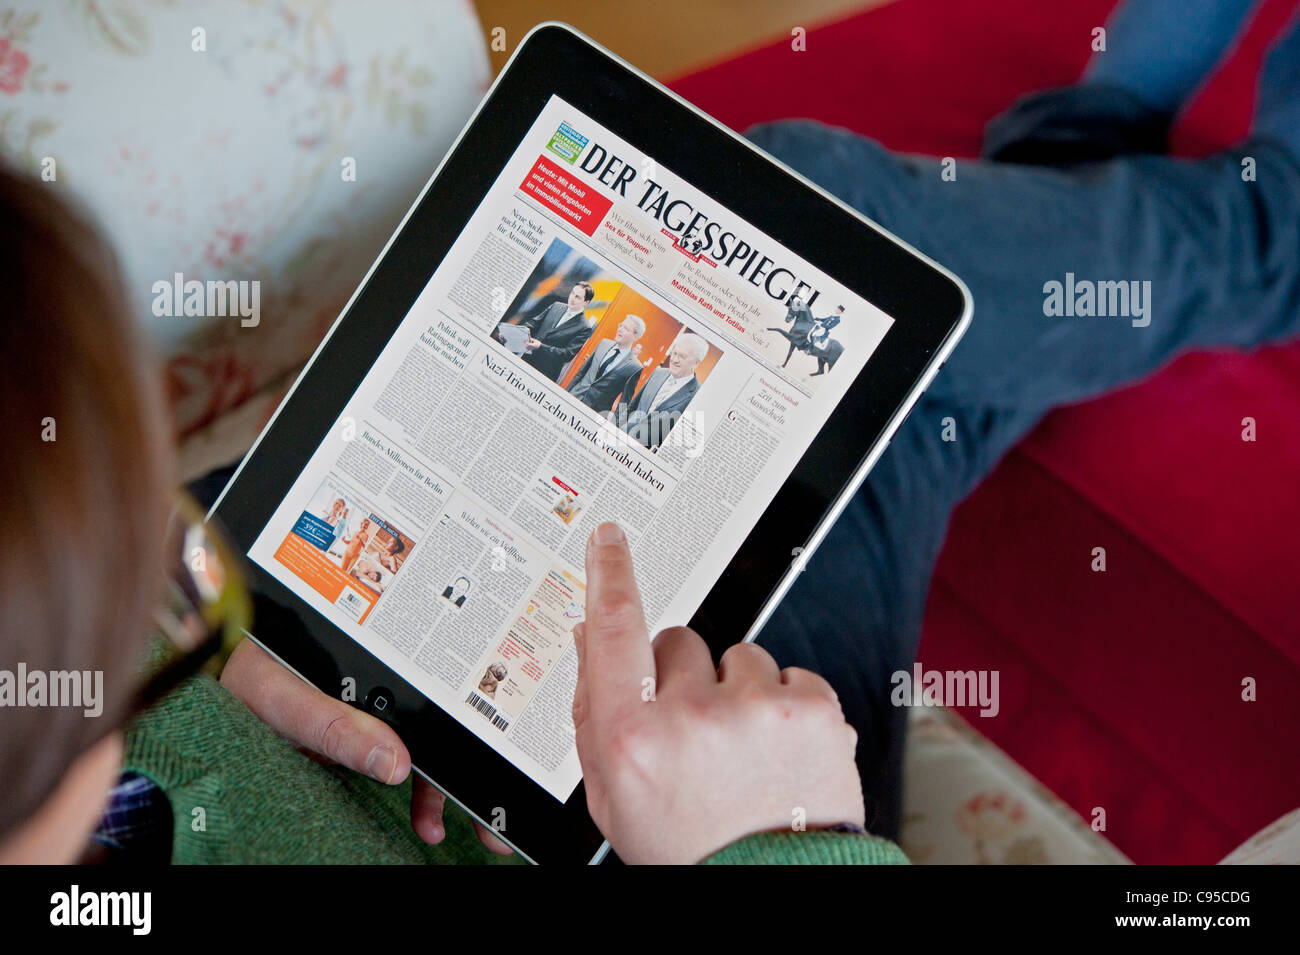 Woman using iPad tablet computer to read Der Tagesspiegel German Berlin daily newspaper online - Stock Image